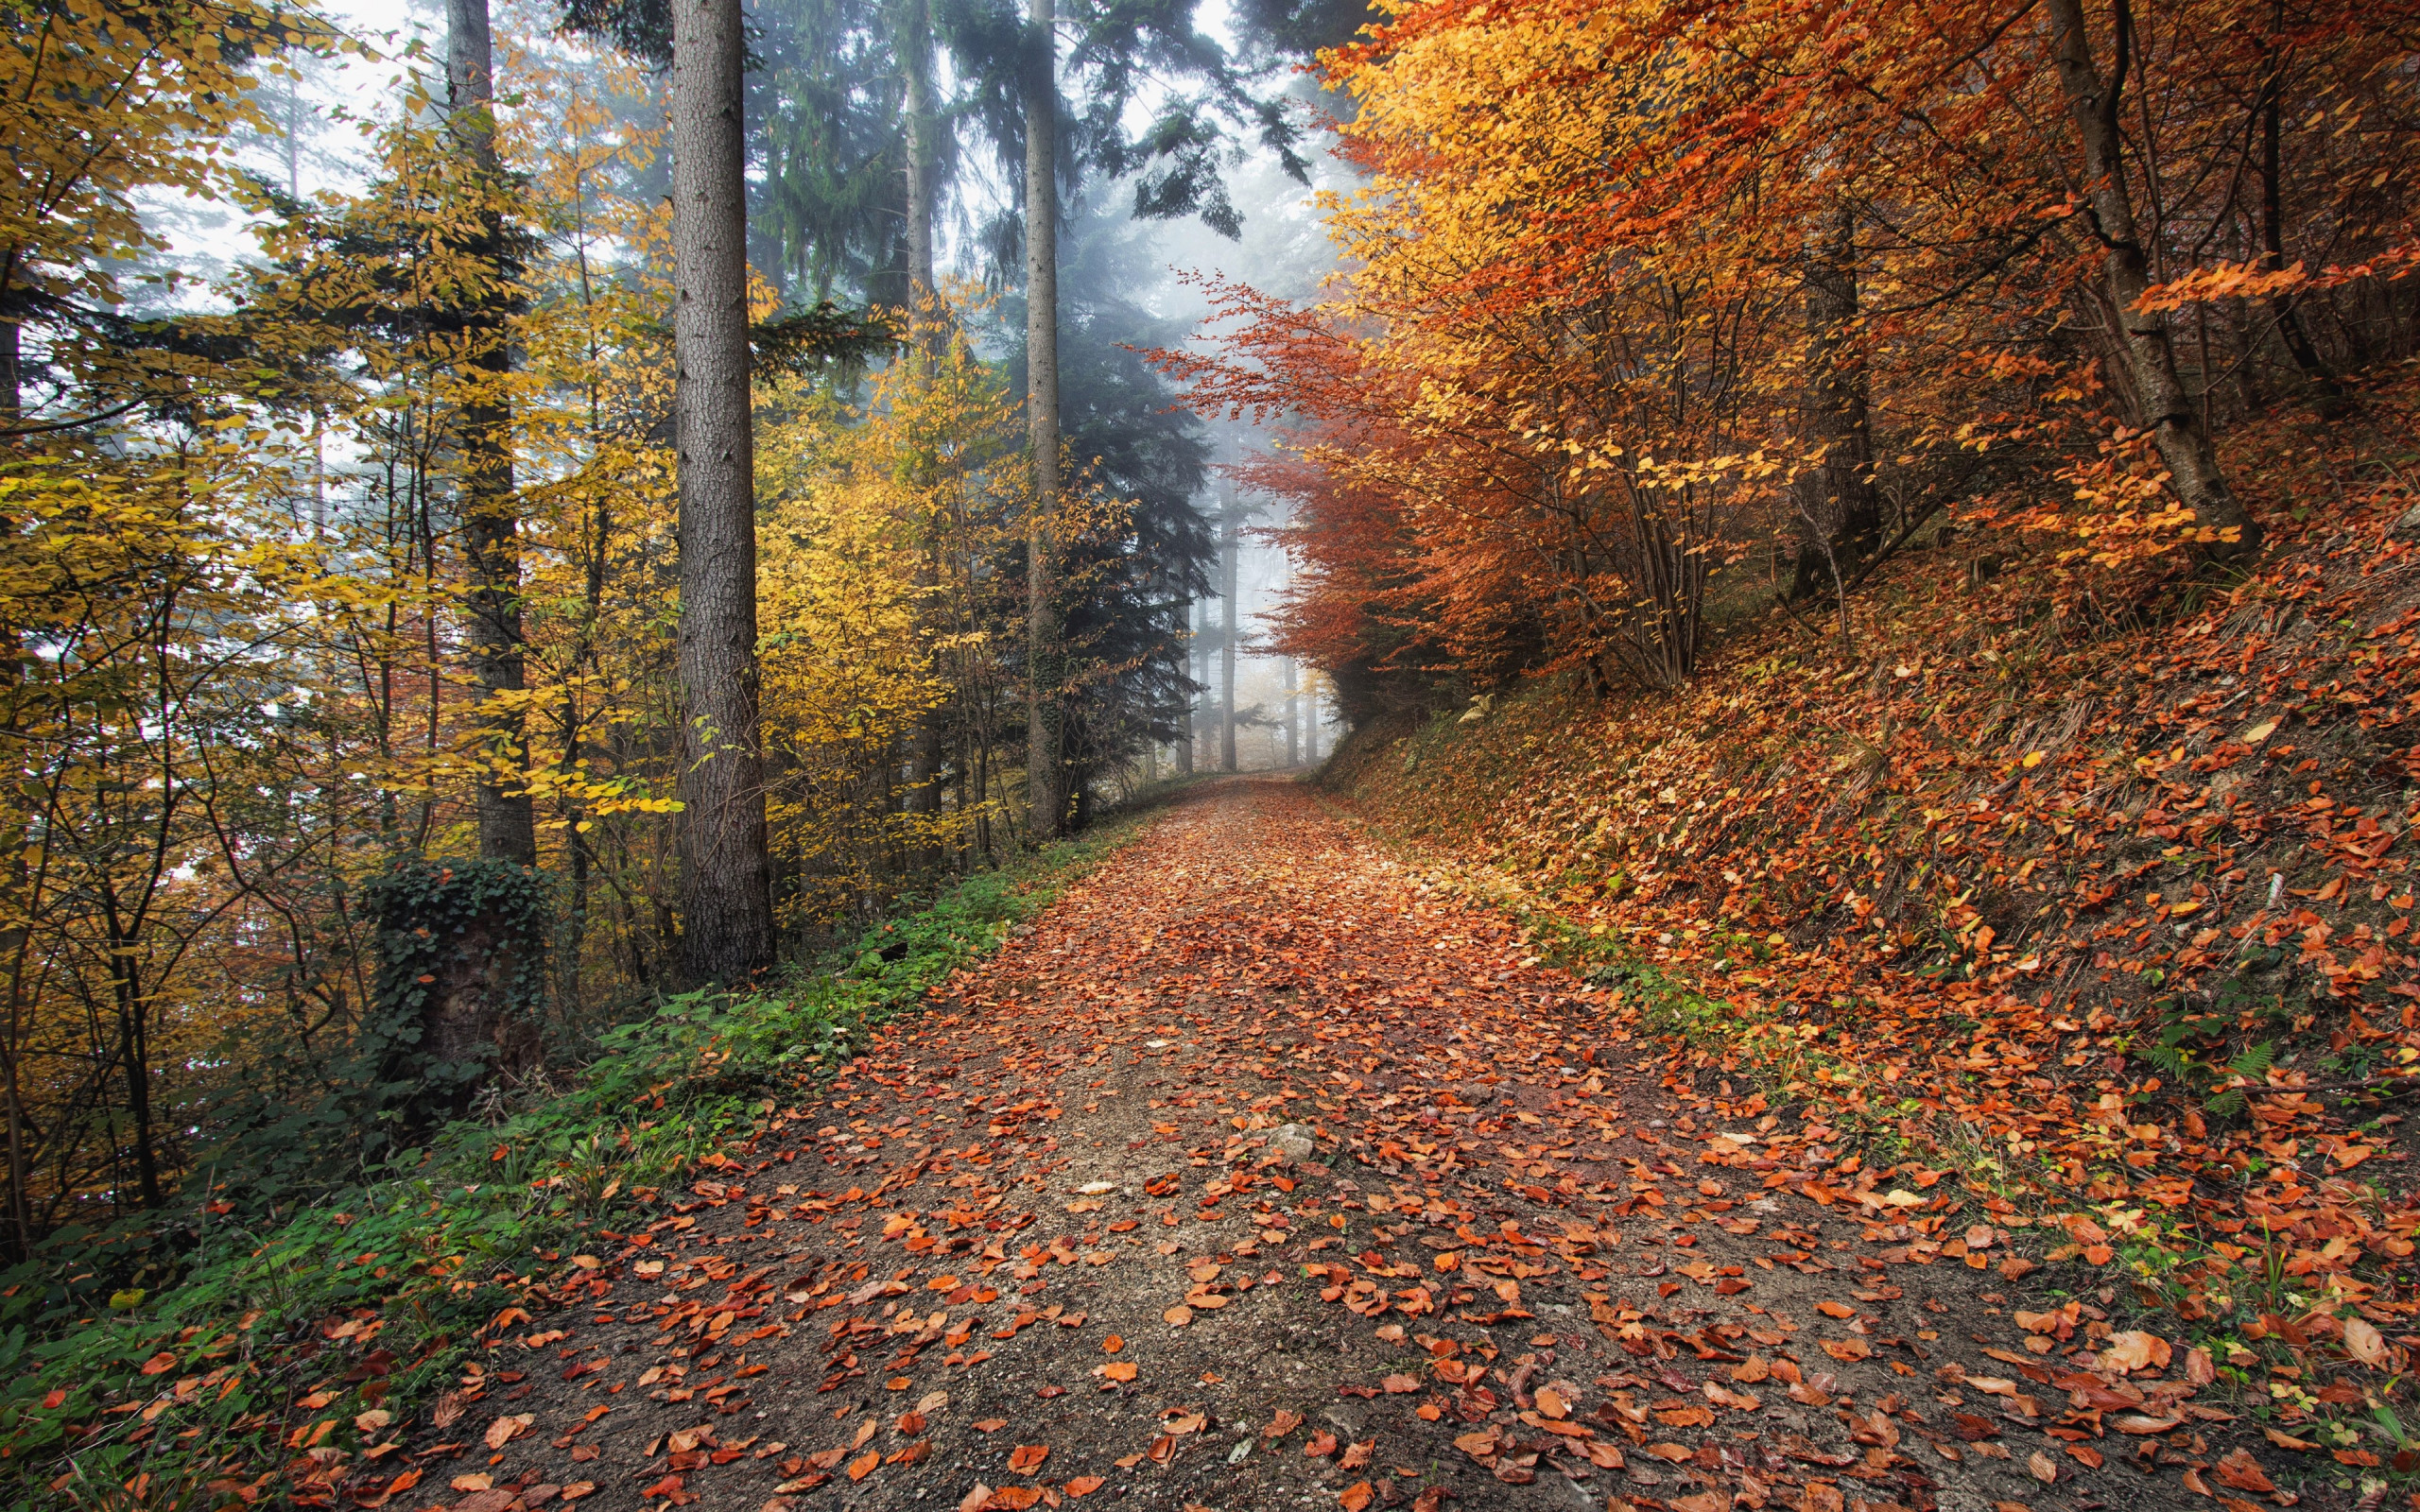 How nature looks Autumn in Kirchzarten, Germany wallpaper 2560x1600